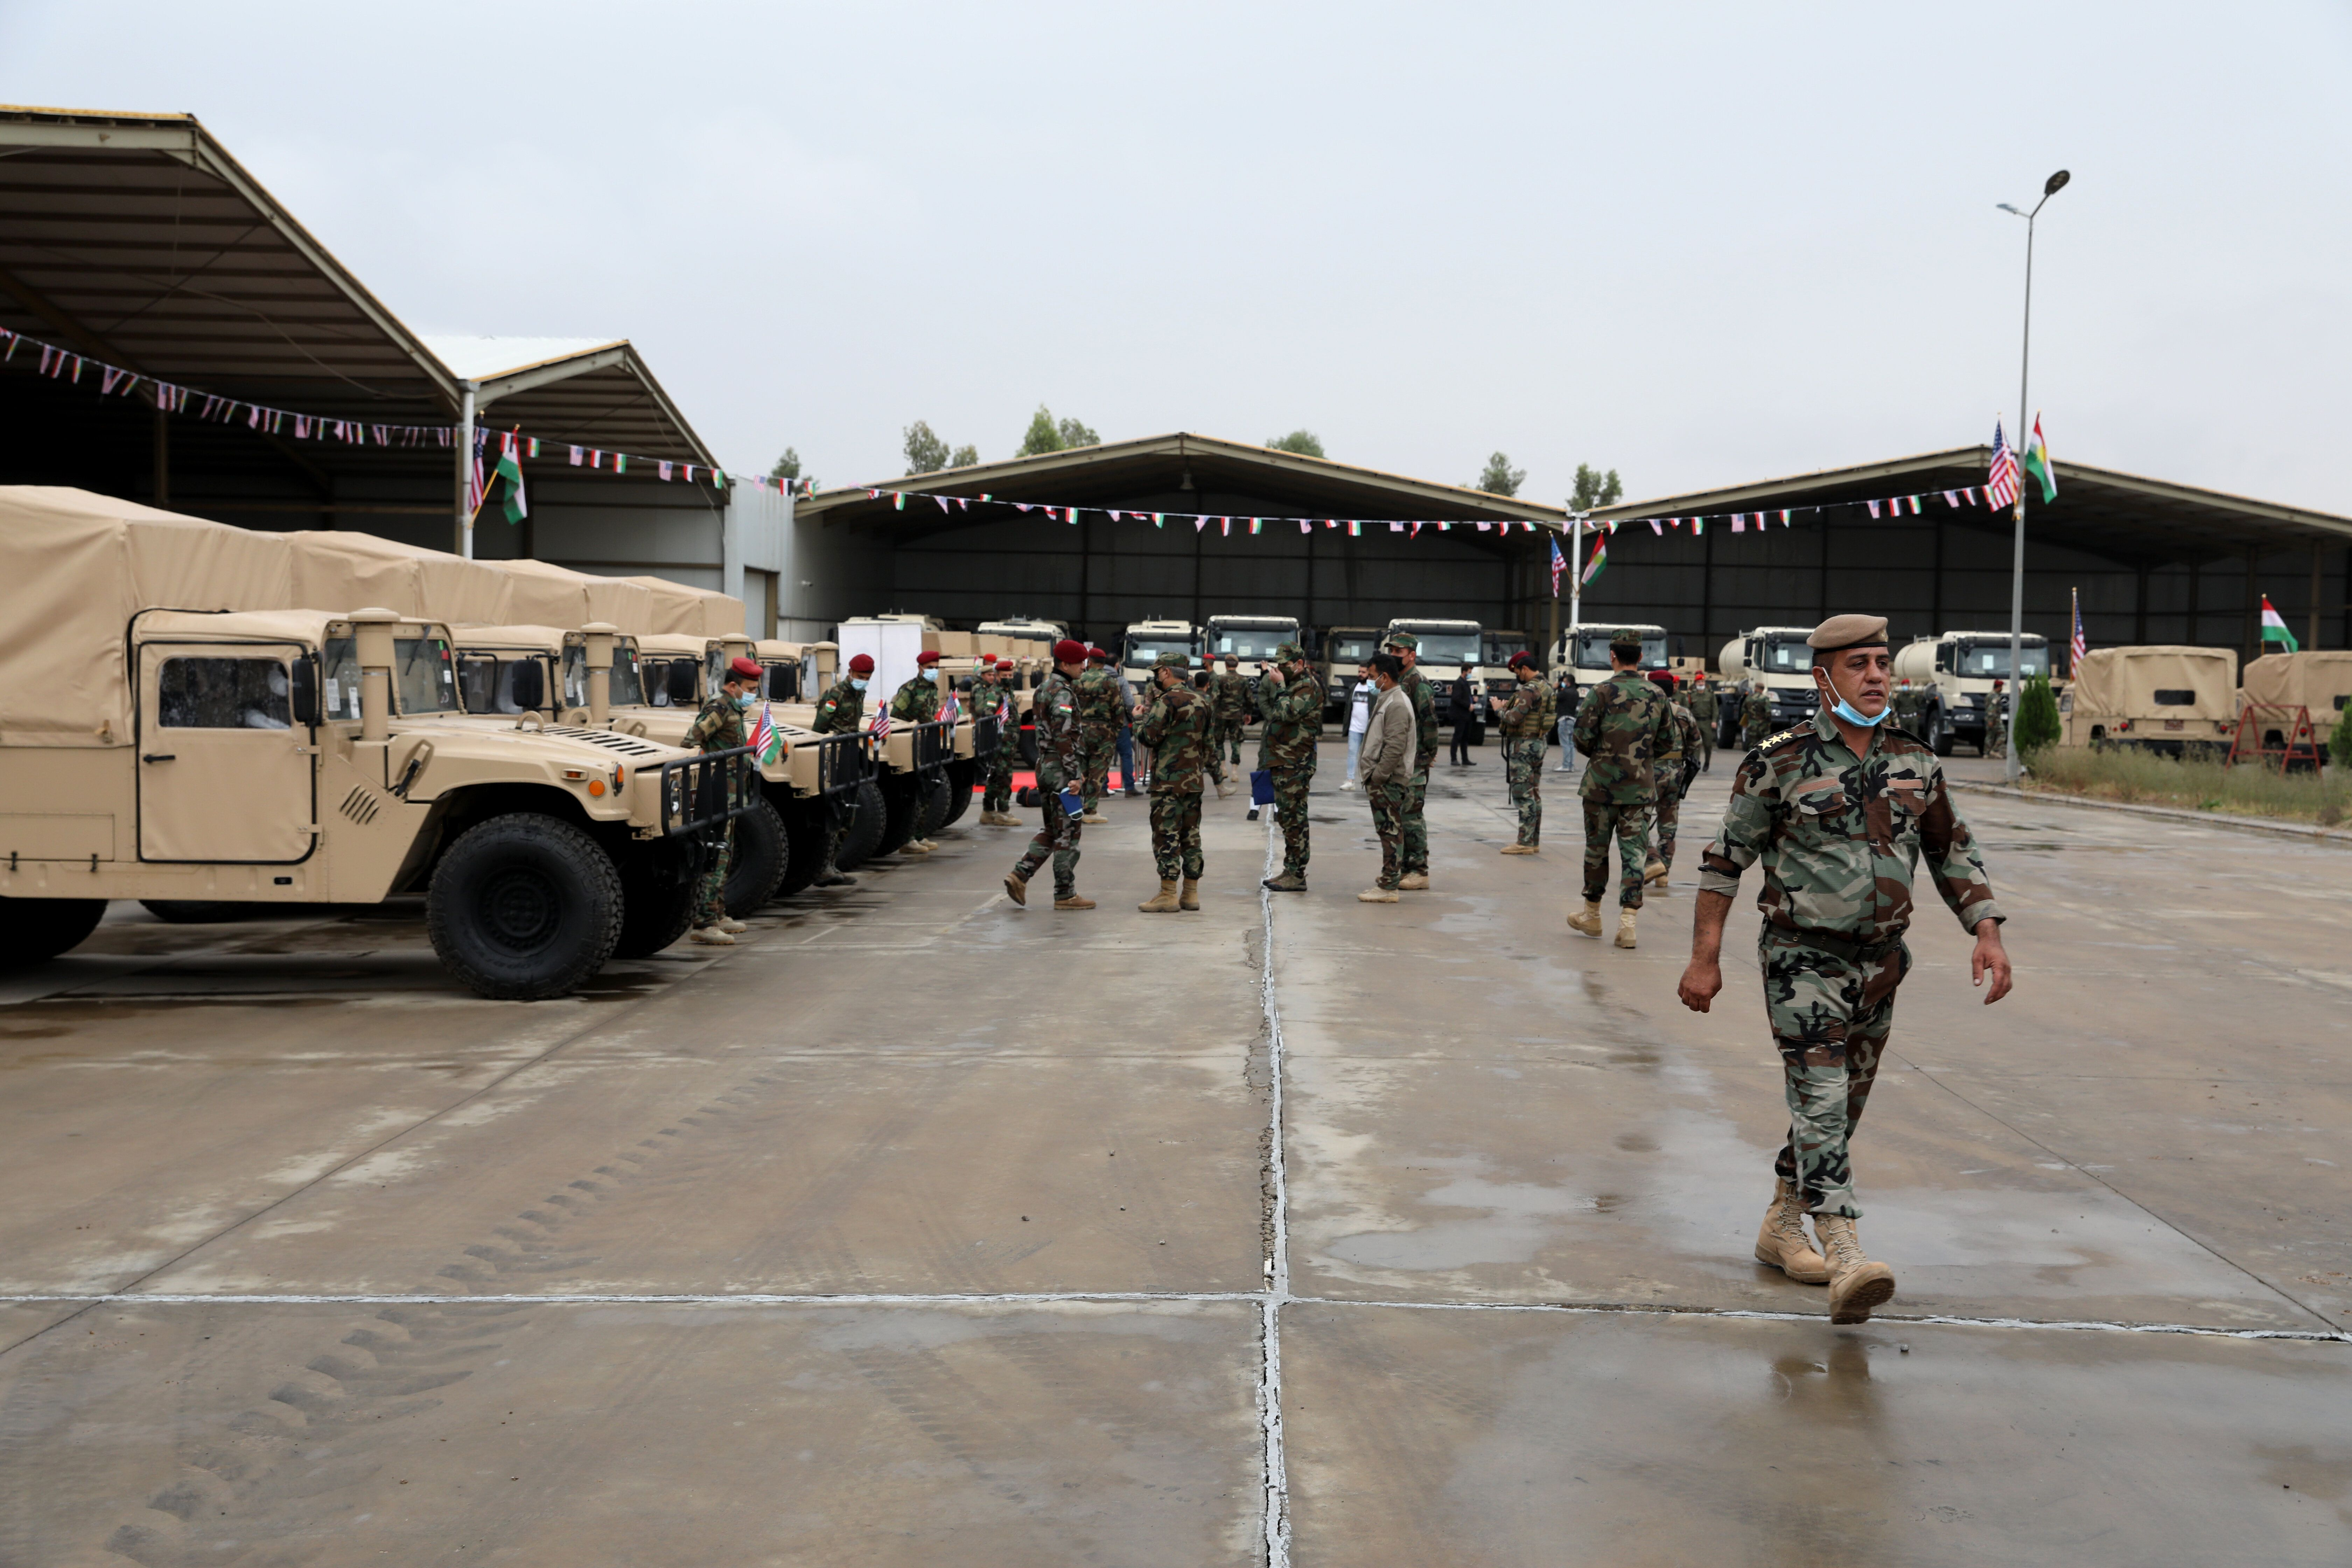 A ceremony held for the delivery of the armored vehicles, logistics and other military supplies sent by the U.S. for the 14th